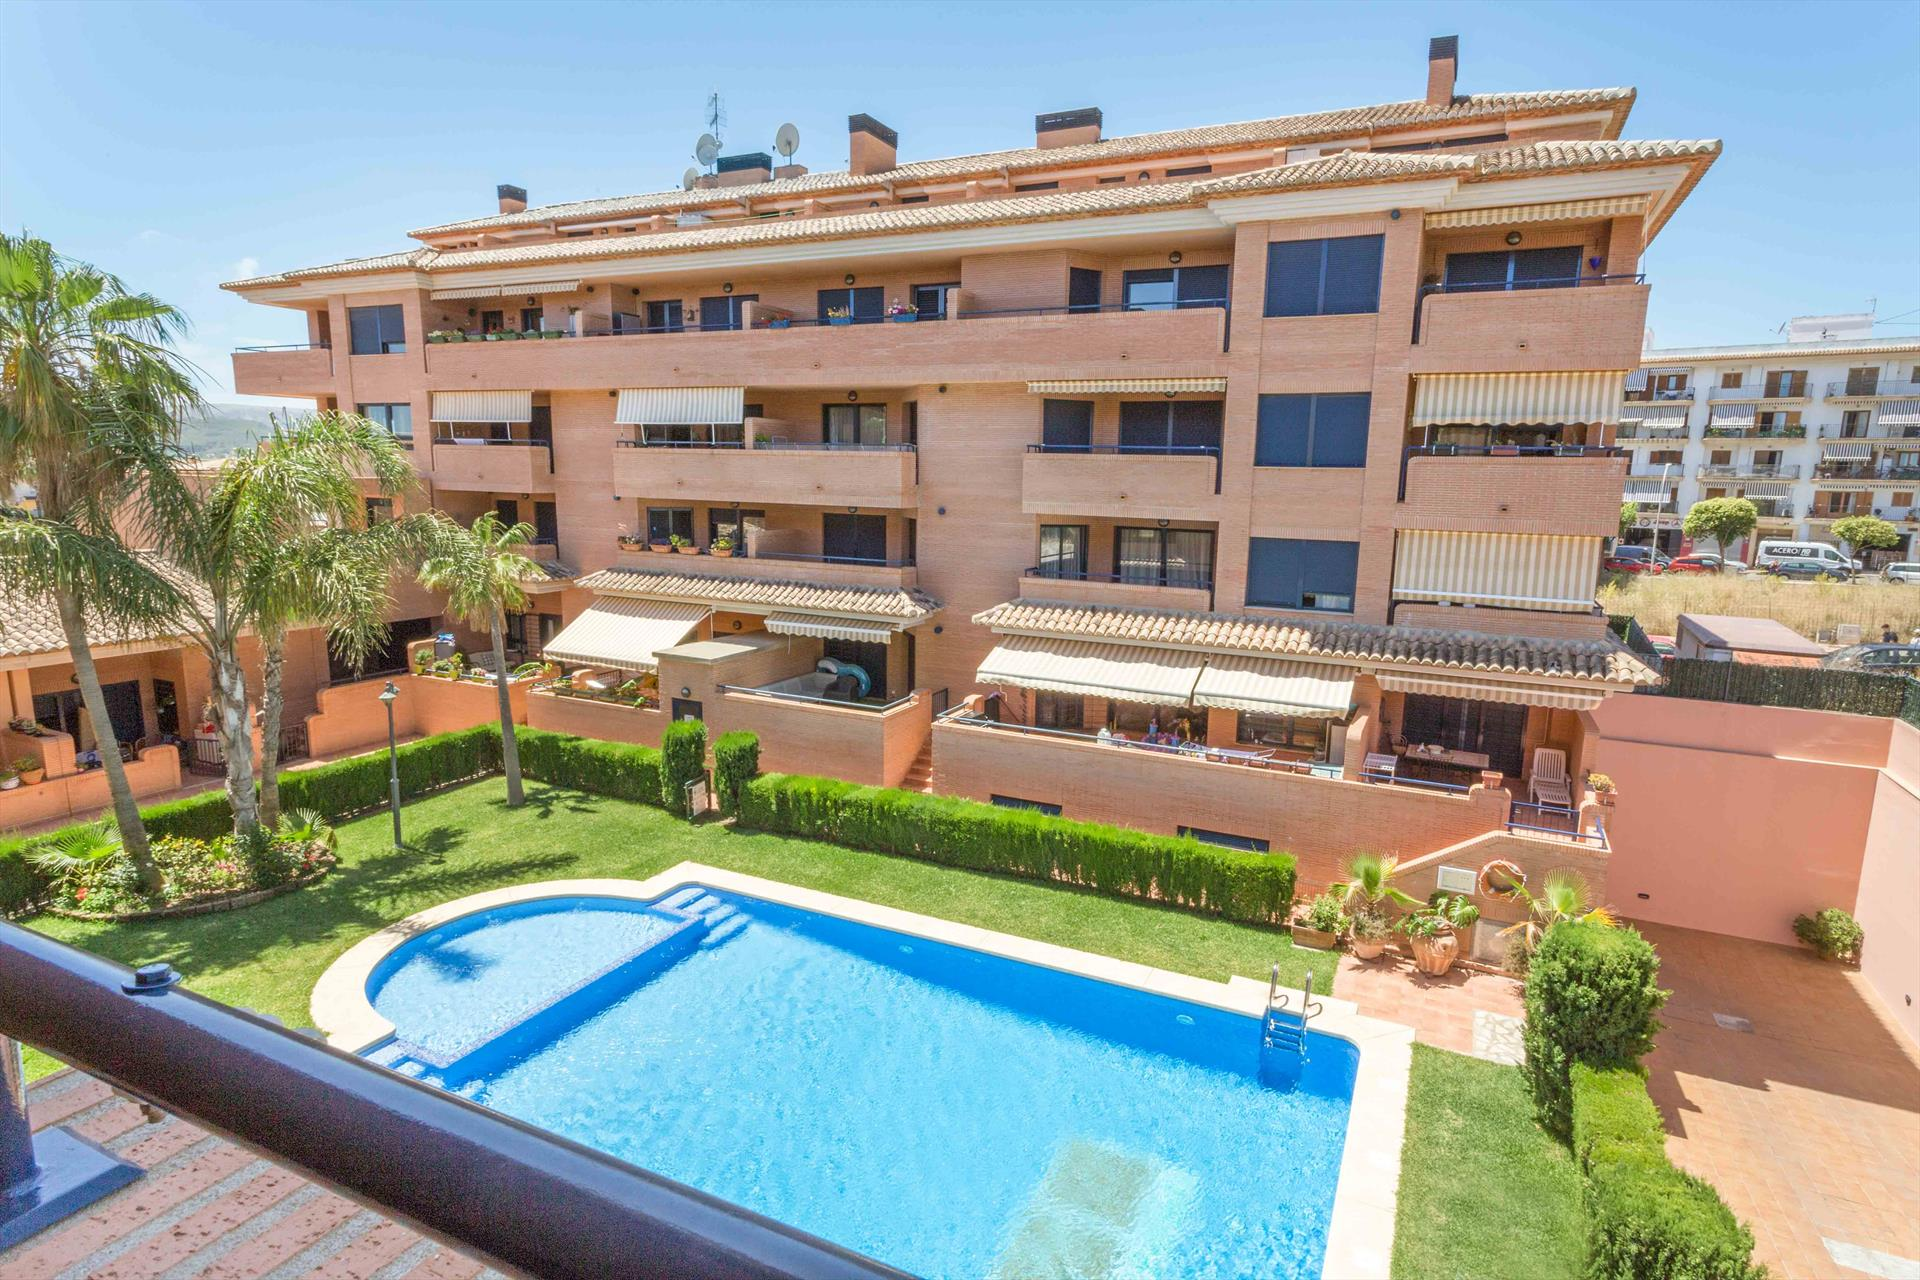 Apartamento Los Molinos LT, Beautiful and comfortable apartment in Javea, on the Costa Blanca, Spain  with communal pool for 6 persons.....